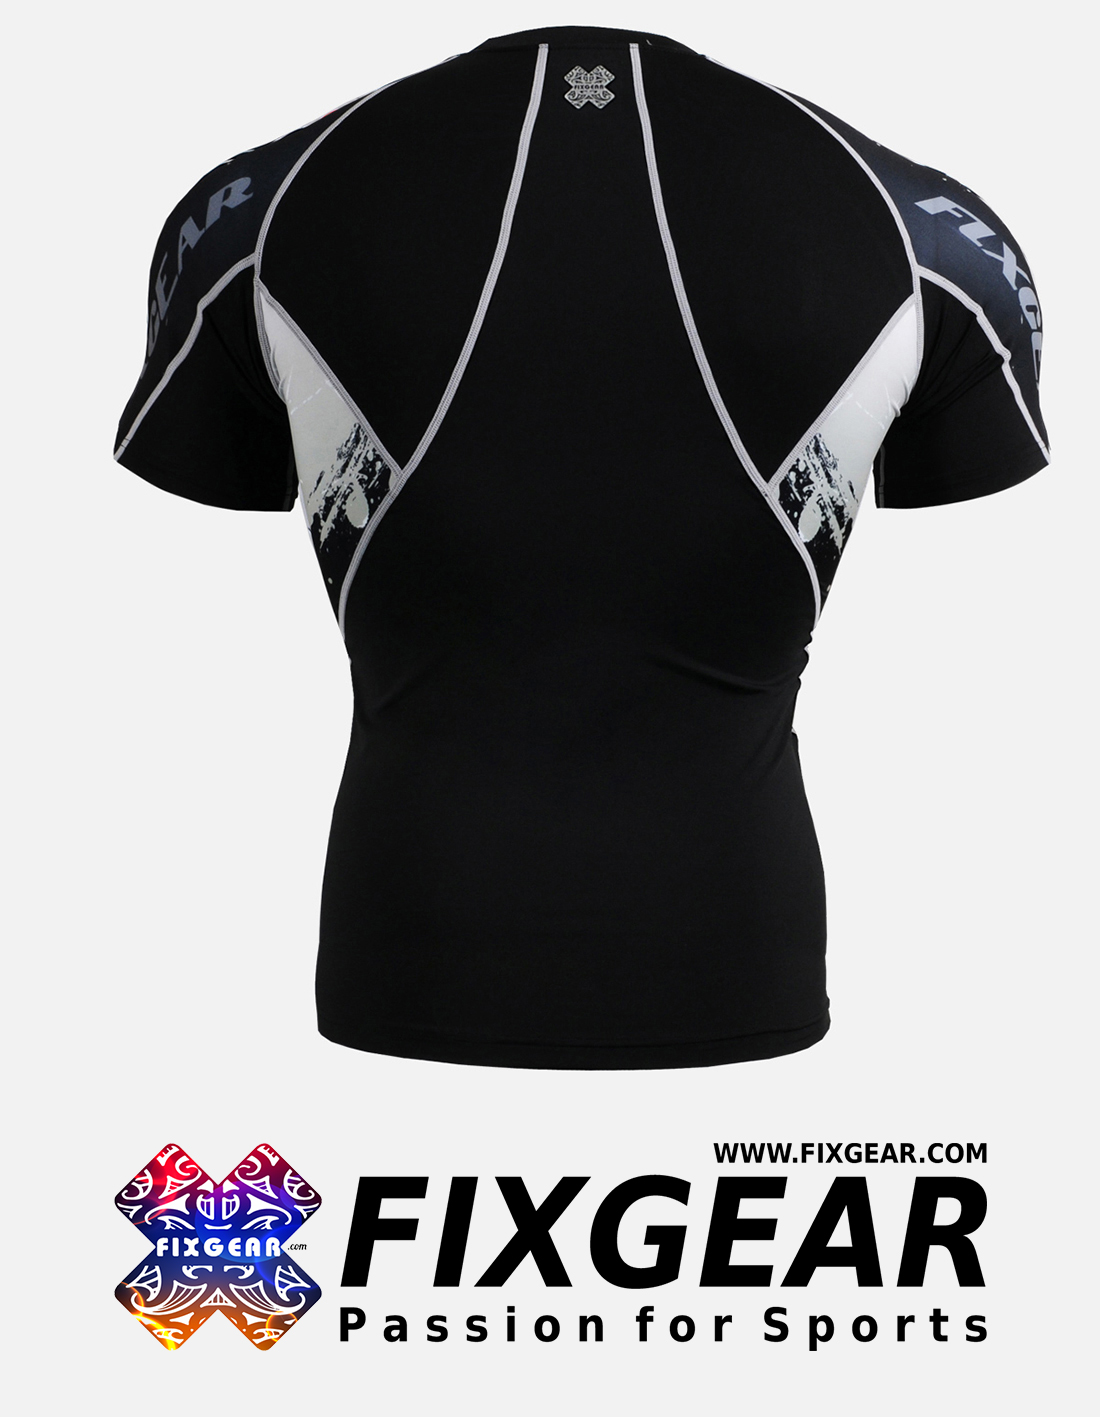 FIXGEAR C2S-B39 Compression Base Layer Shirt Short Sleeve